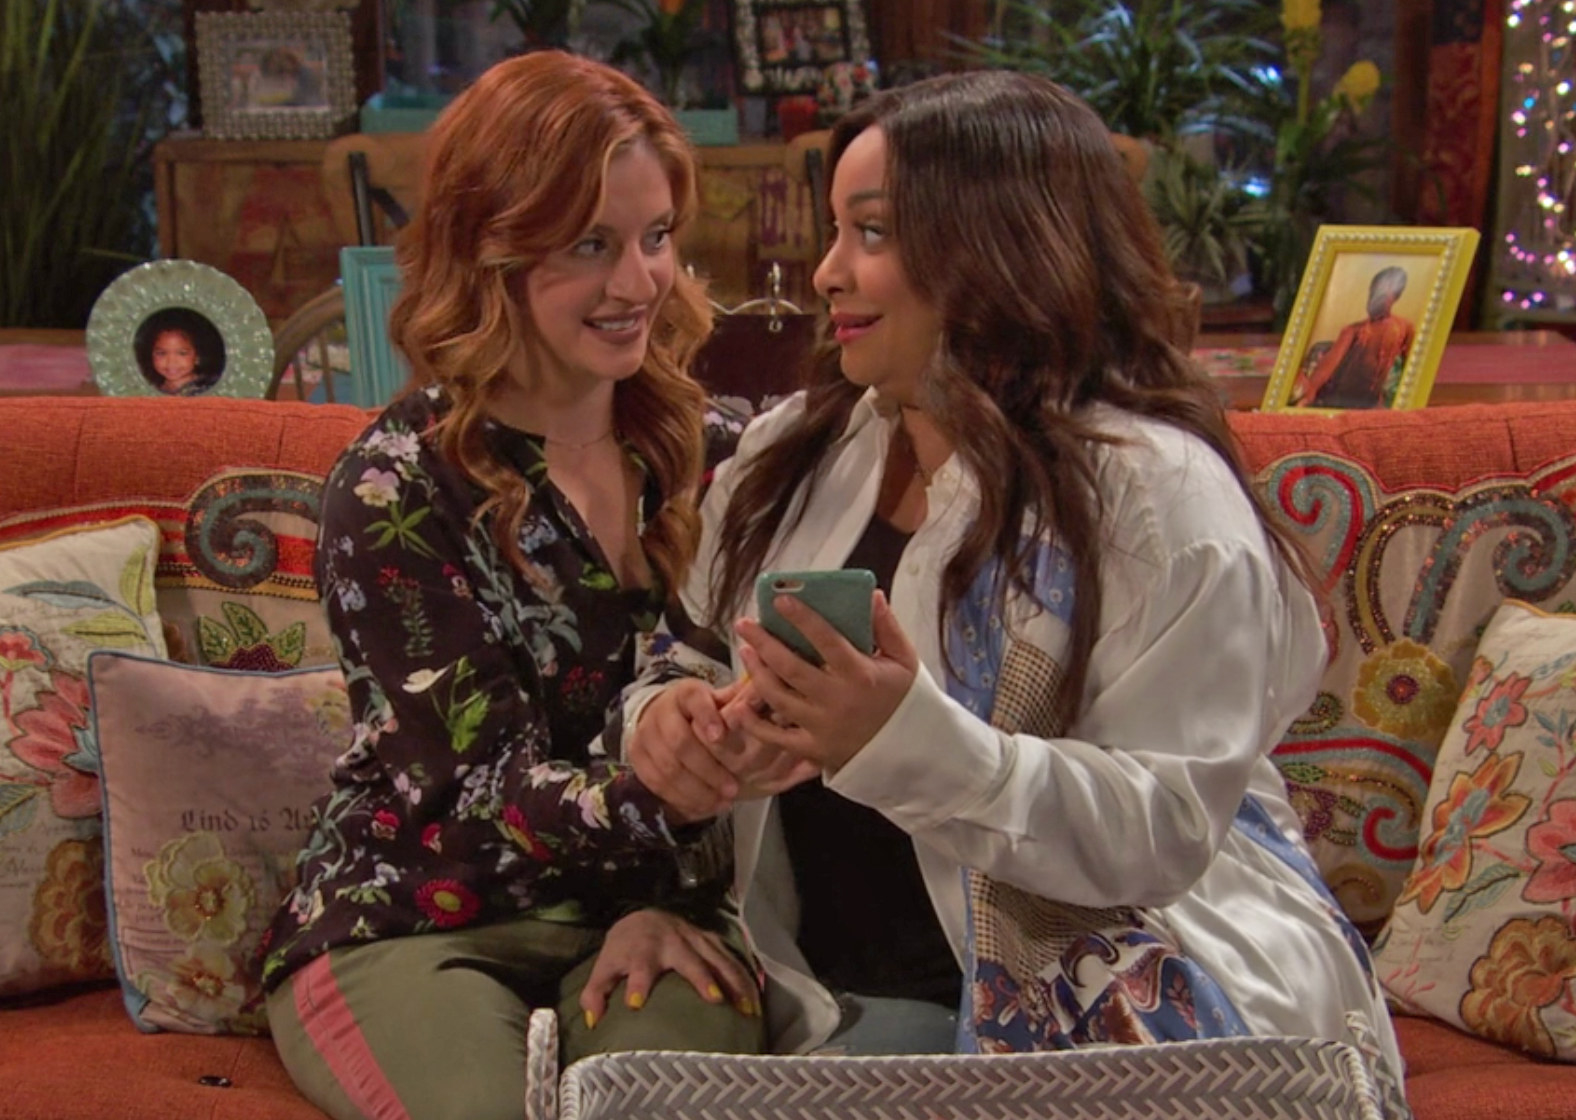 Chelsea and Raven smiling at each other and holding a cellphone with their hands